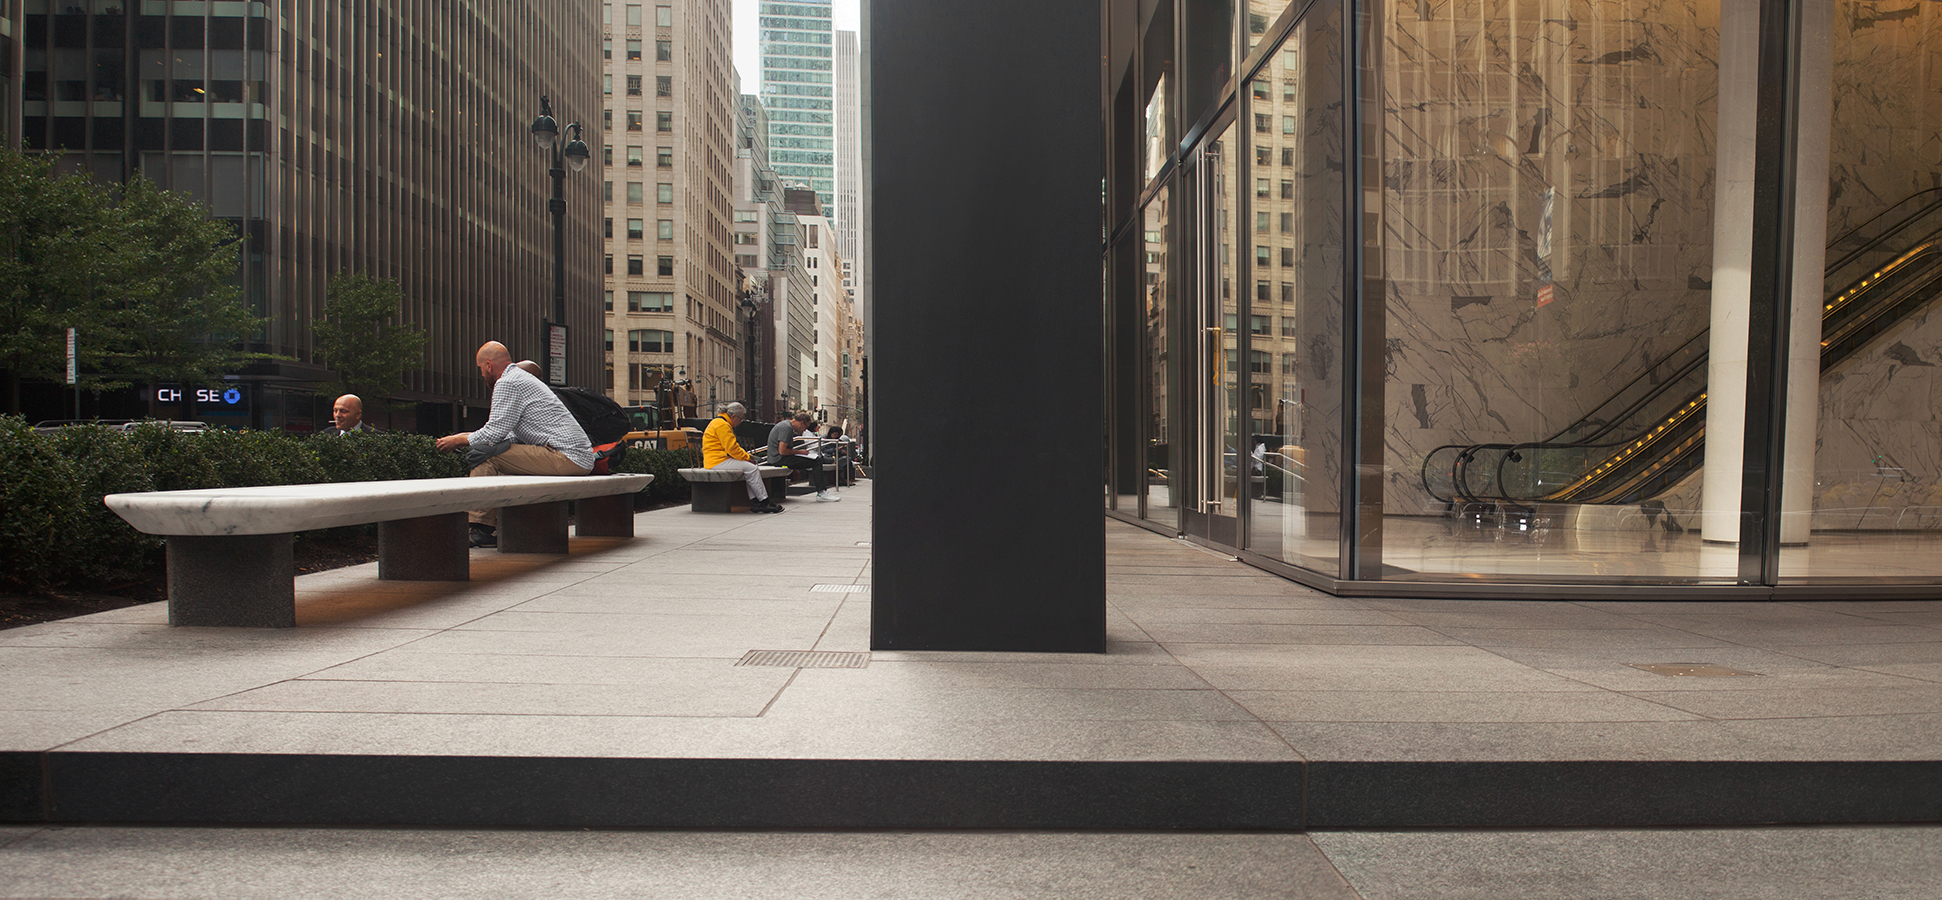 Park Ave Benches 1-72.jpg